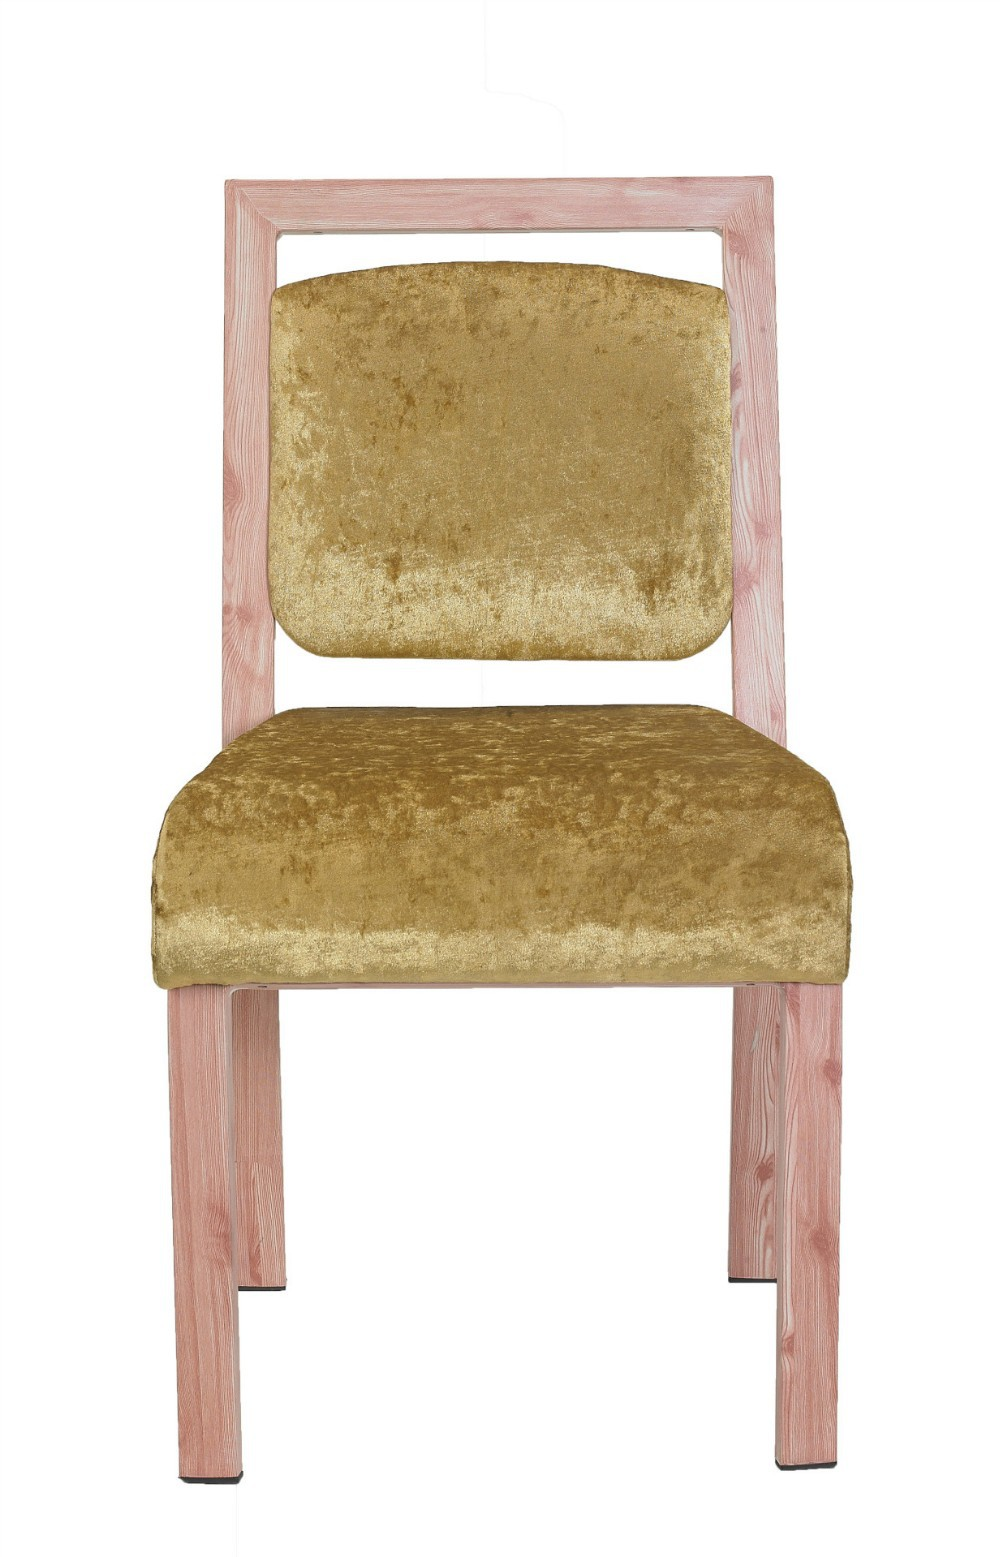 Us 240 0 Stackable Wood Grain Aluminum Banquet Chair Heavy Duty Fabric With High Rub Resistance Comfortable In Hotel Chairs From Furniture On